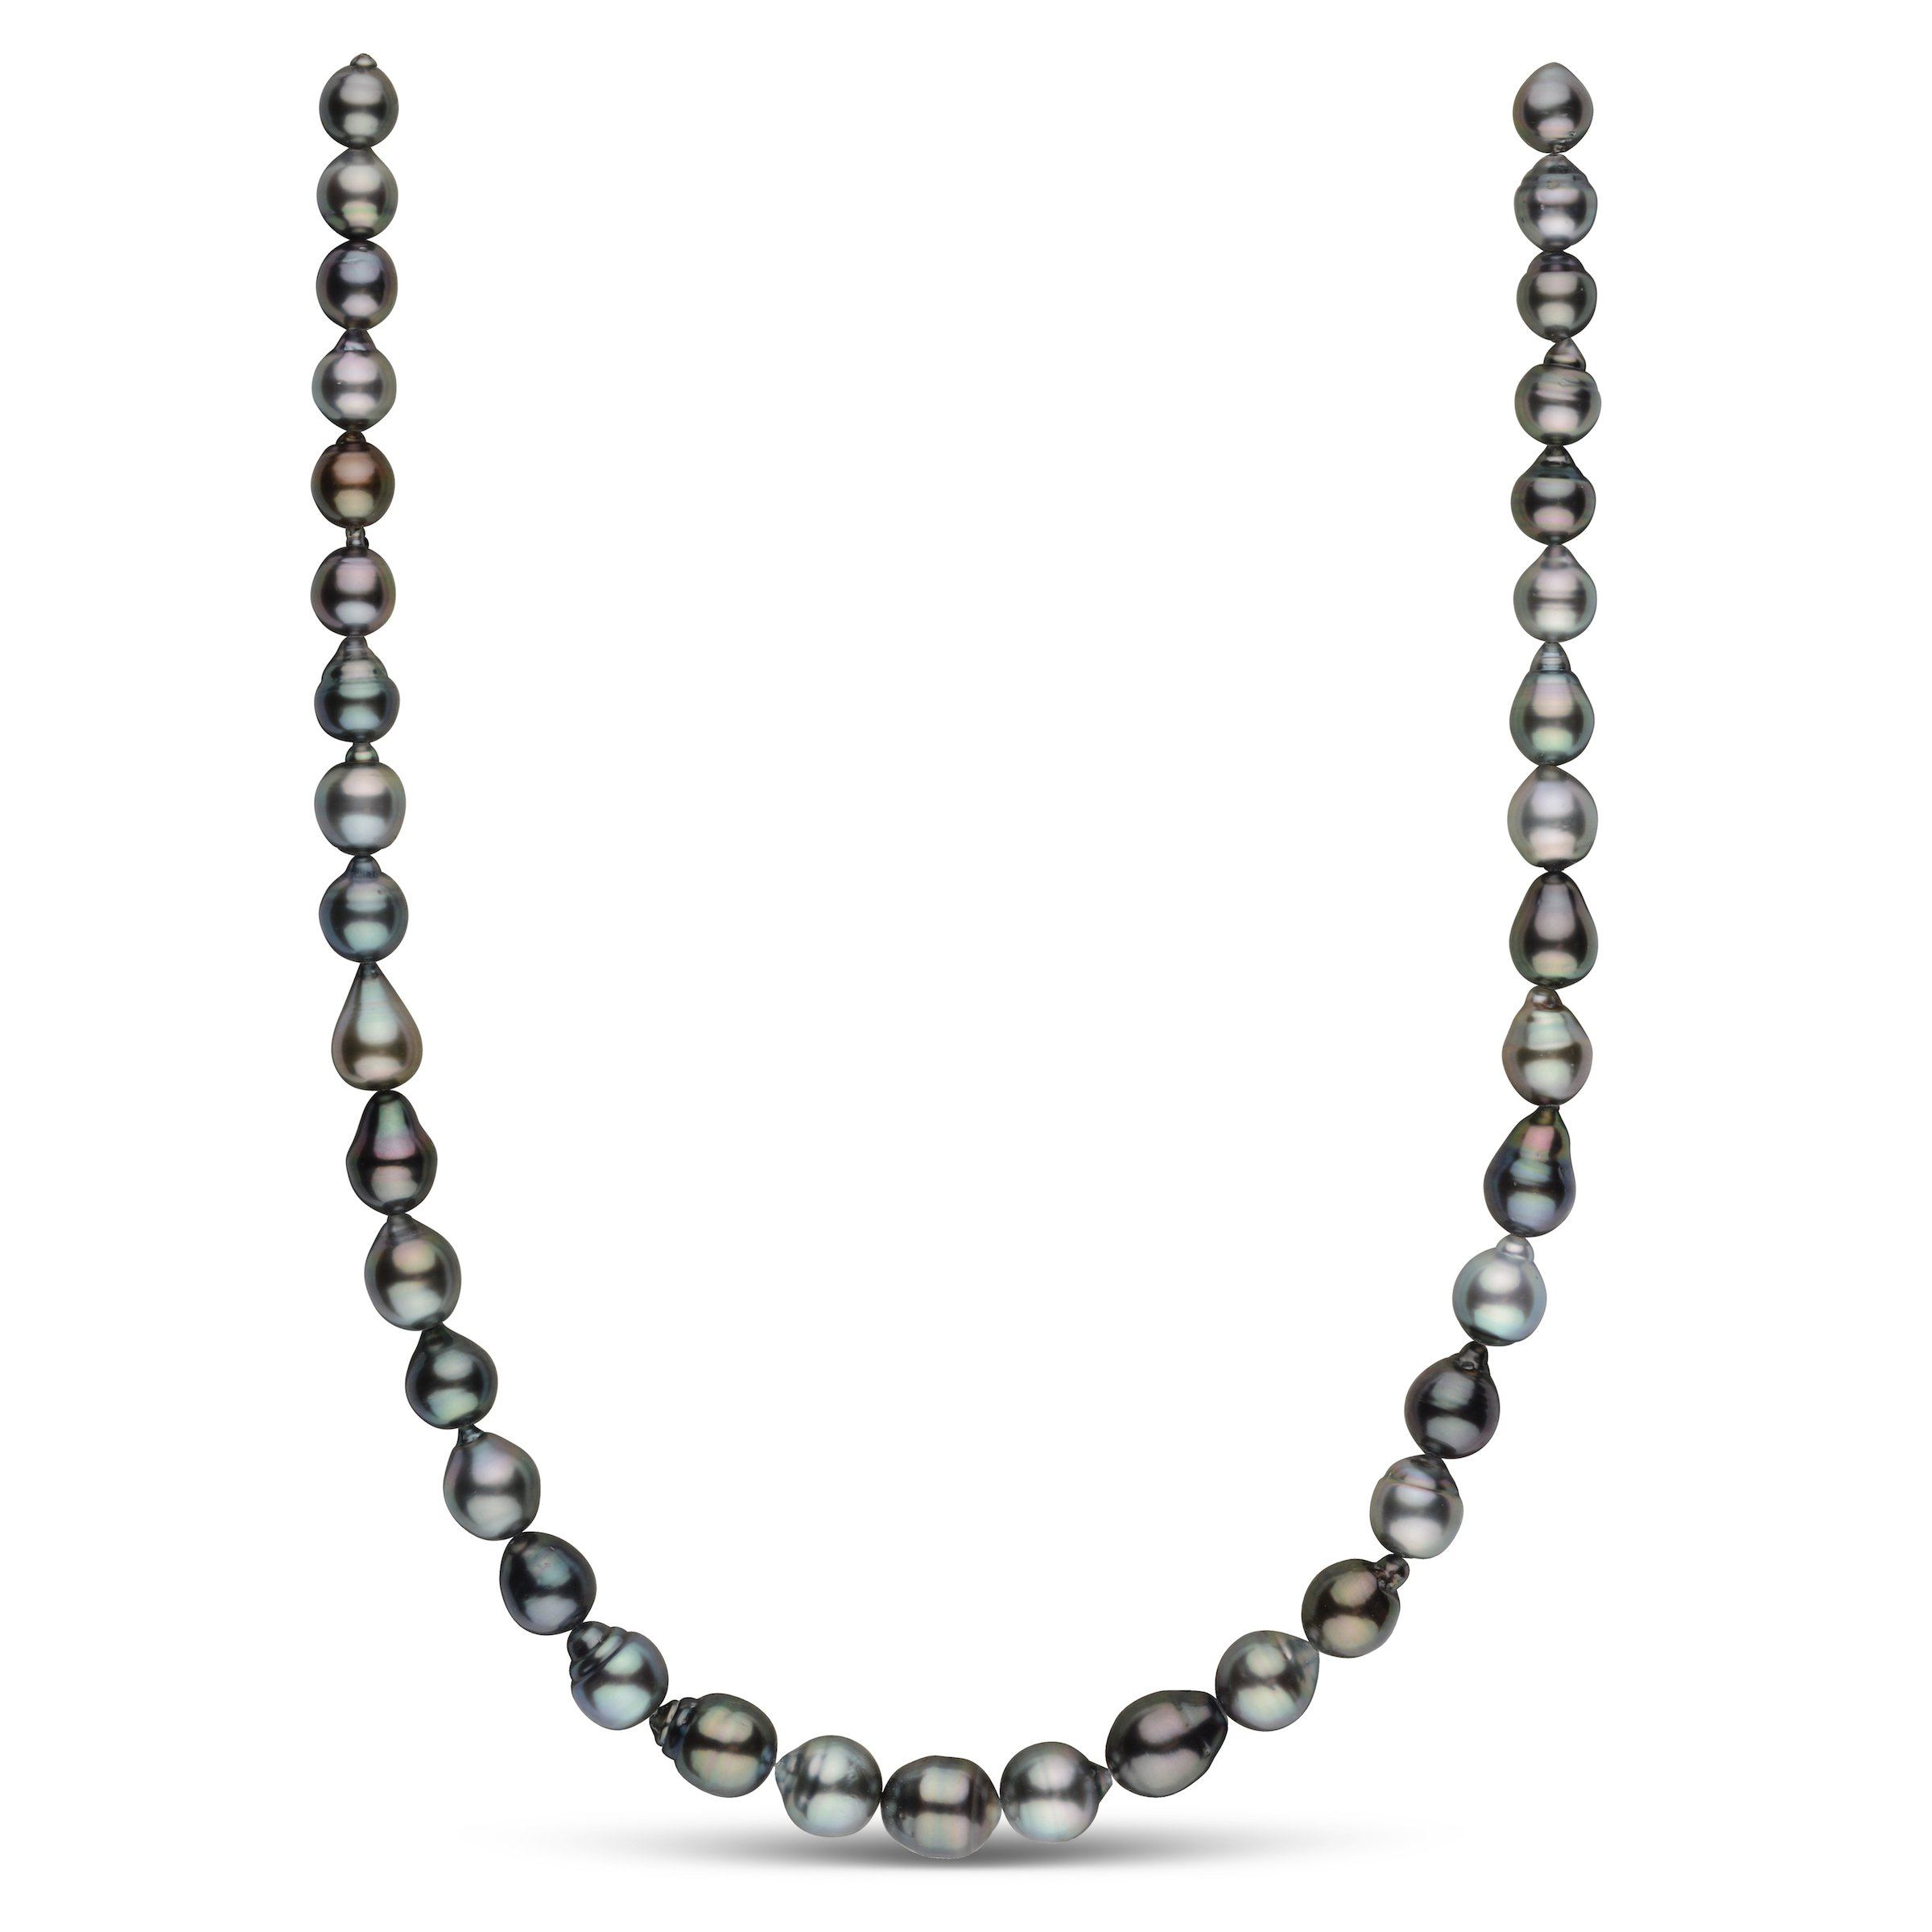 8.1-10.2 mm AAA Tahitian Baroque Pearl Necklace